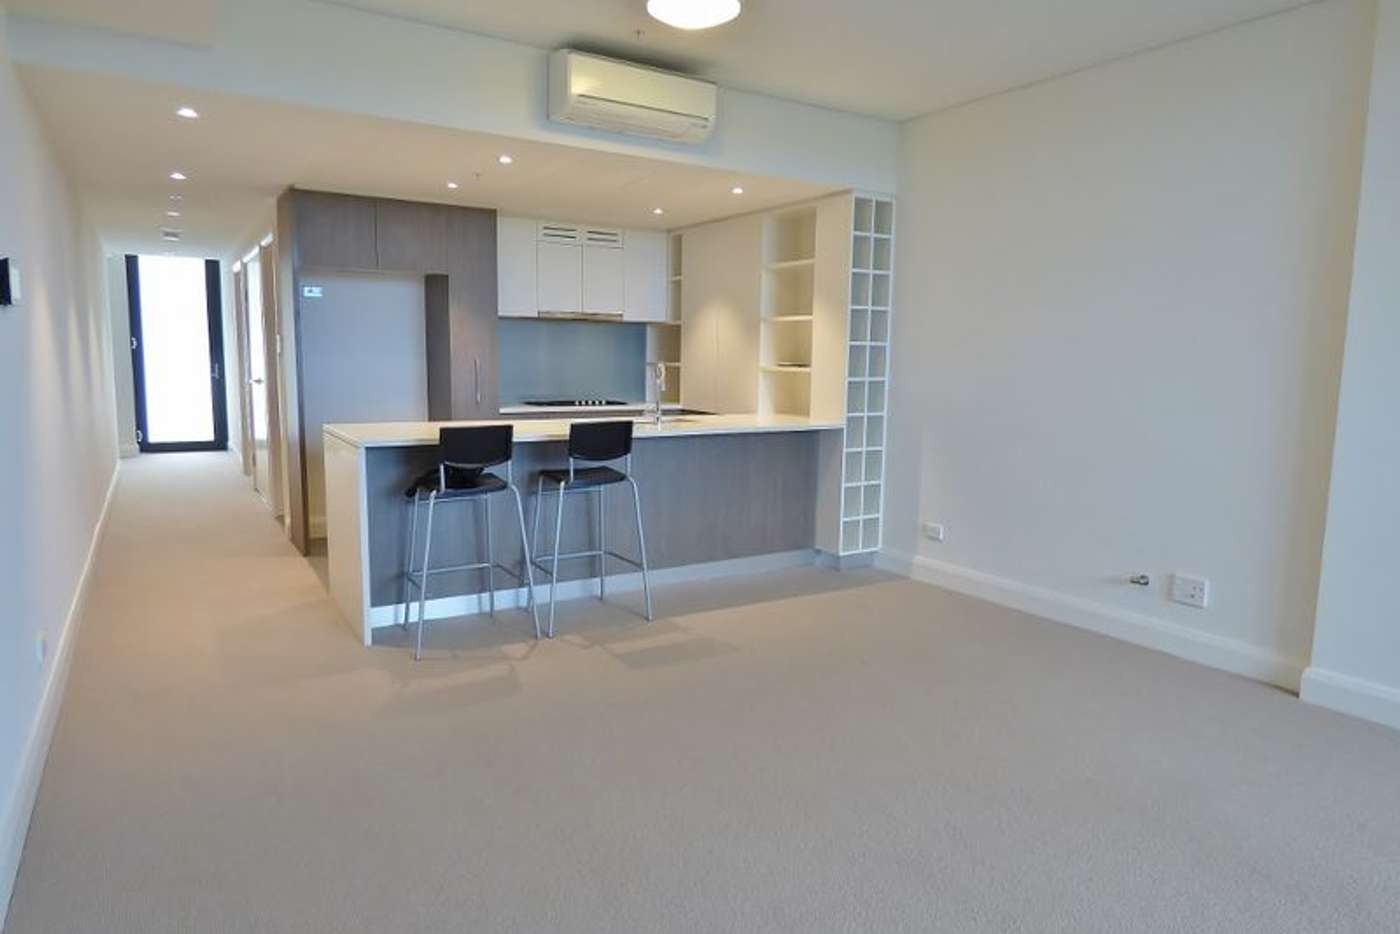 Main view of Homely apartment listing, 304/42 Walker St, Rhodes NSW 2138